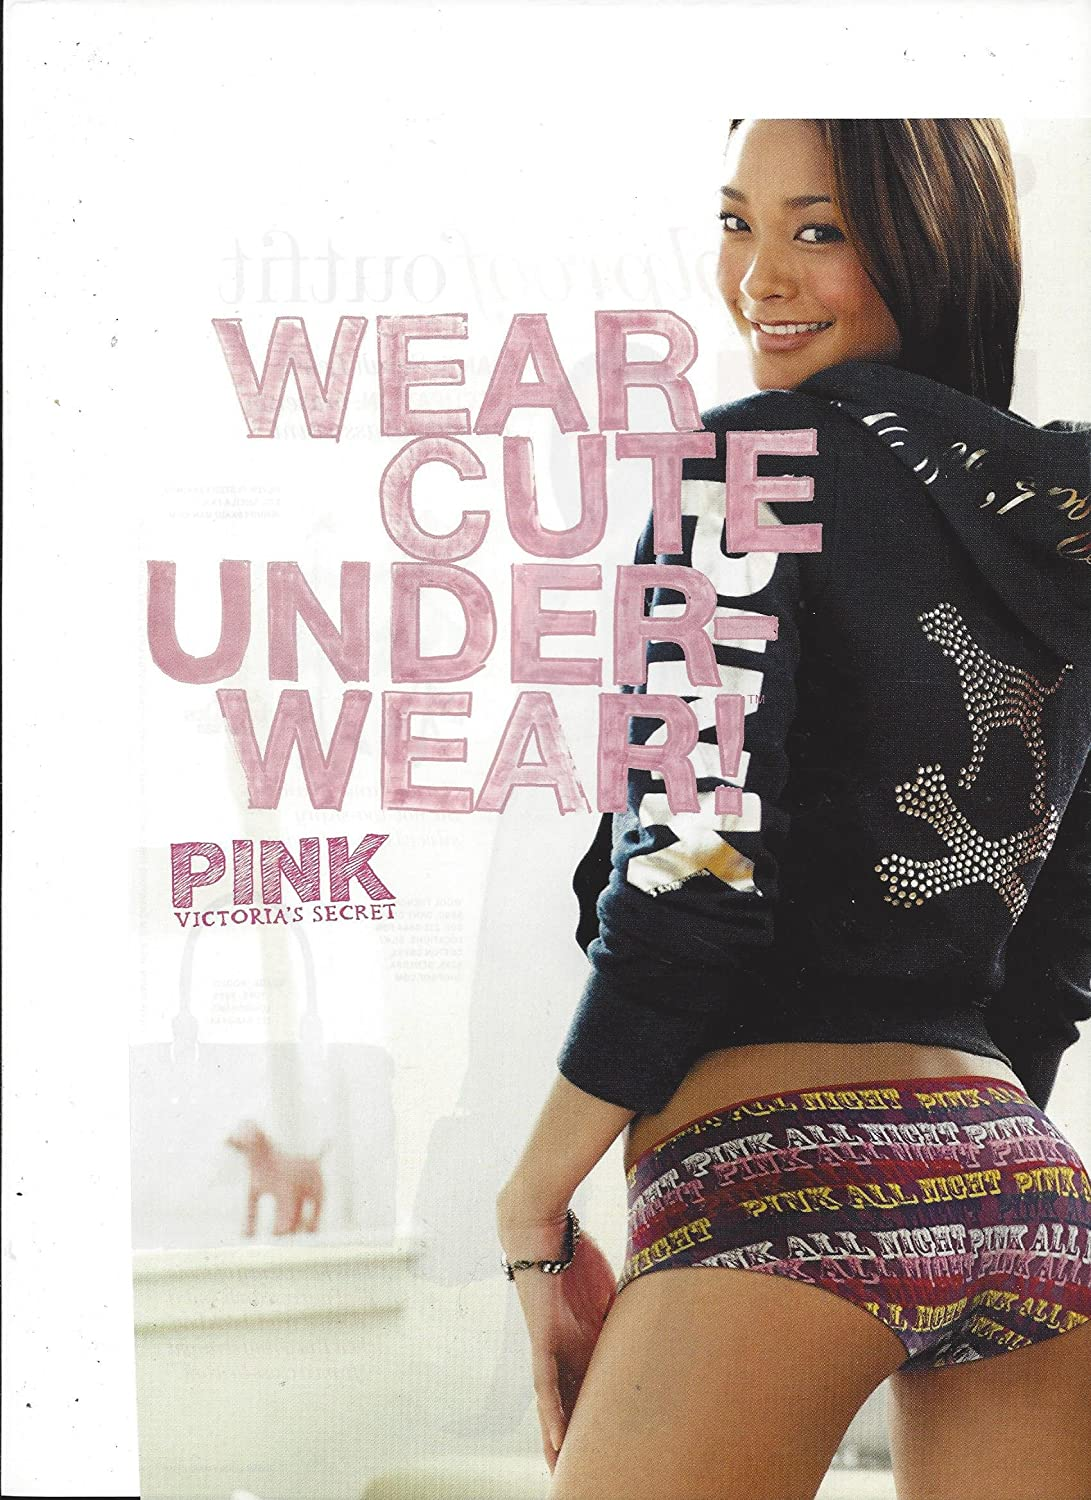 PRINT AD For 2006 Victoria's Secret Pink Wear Cute Underwear Pink All Night